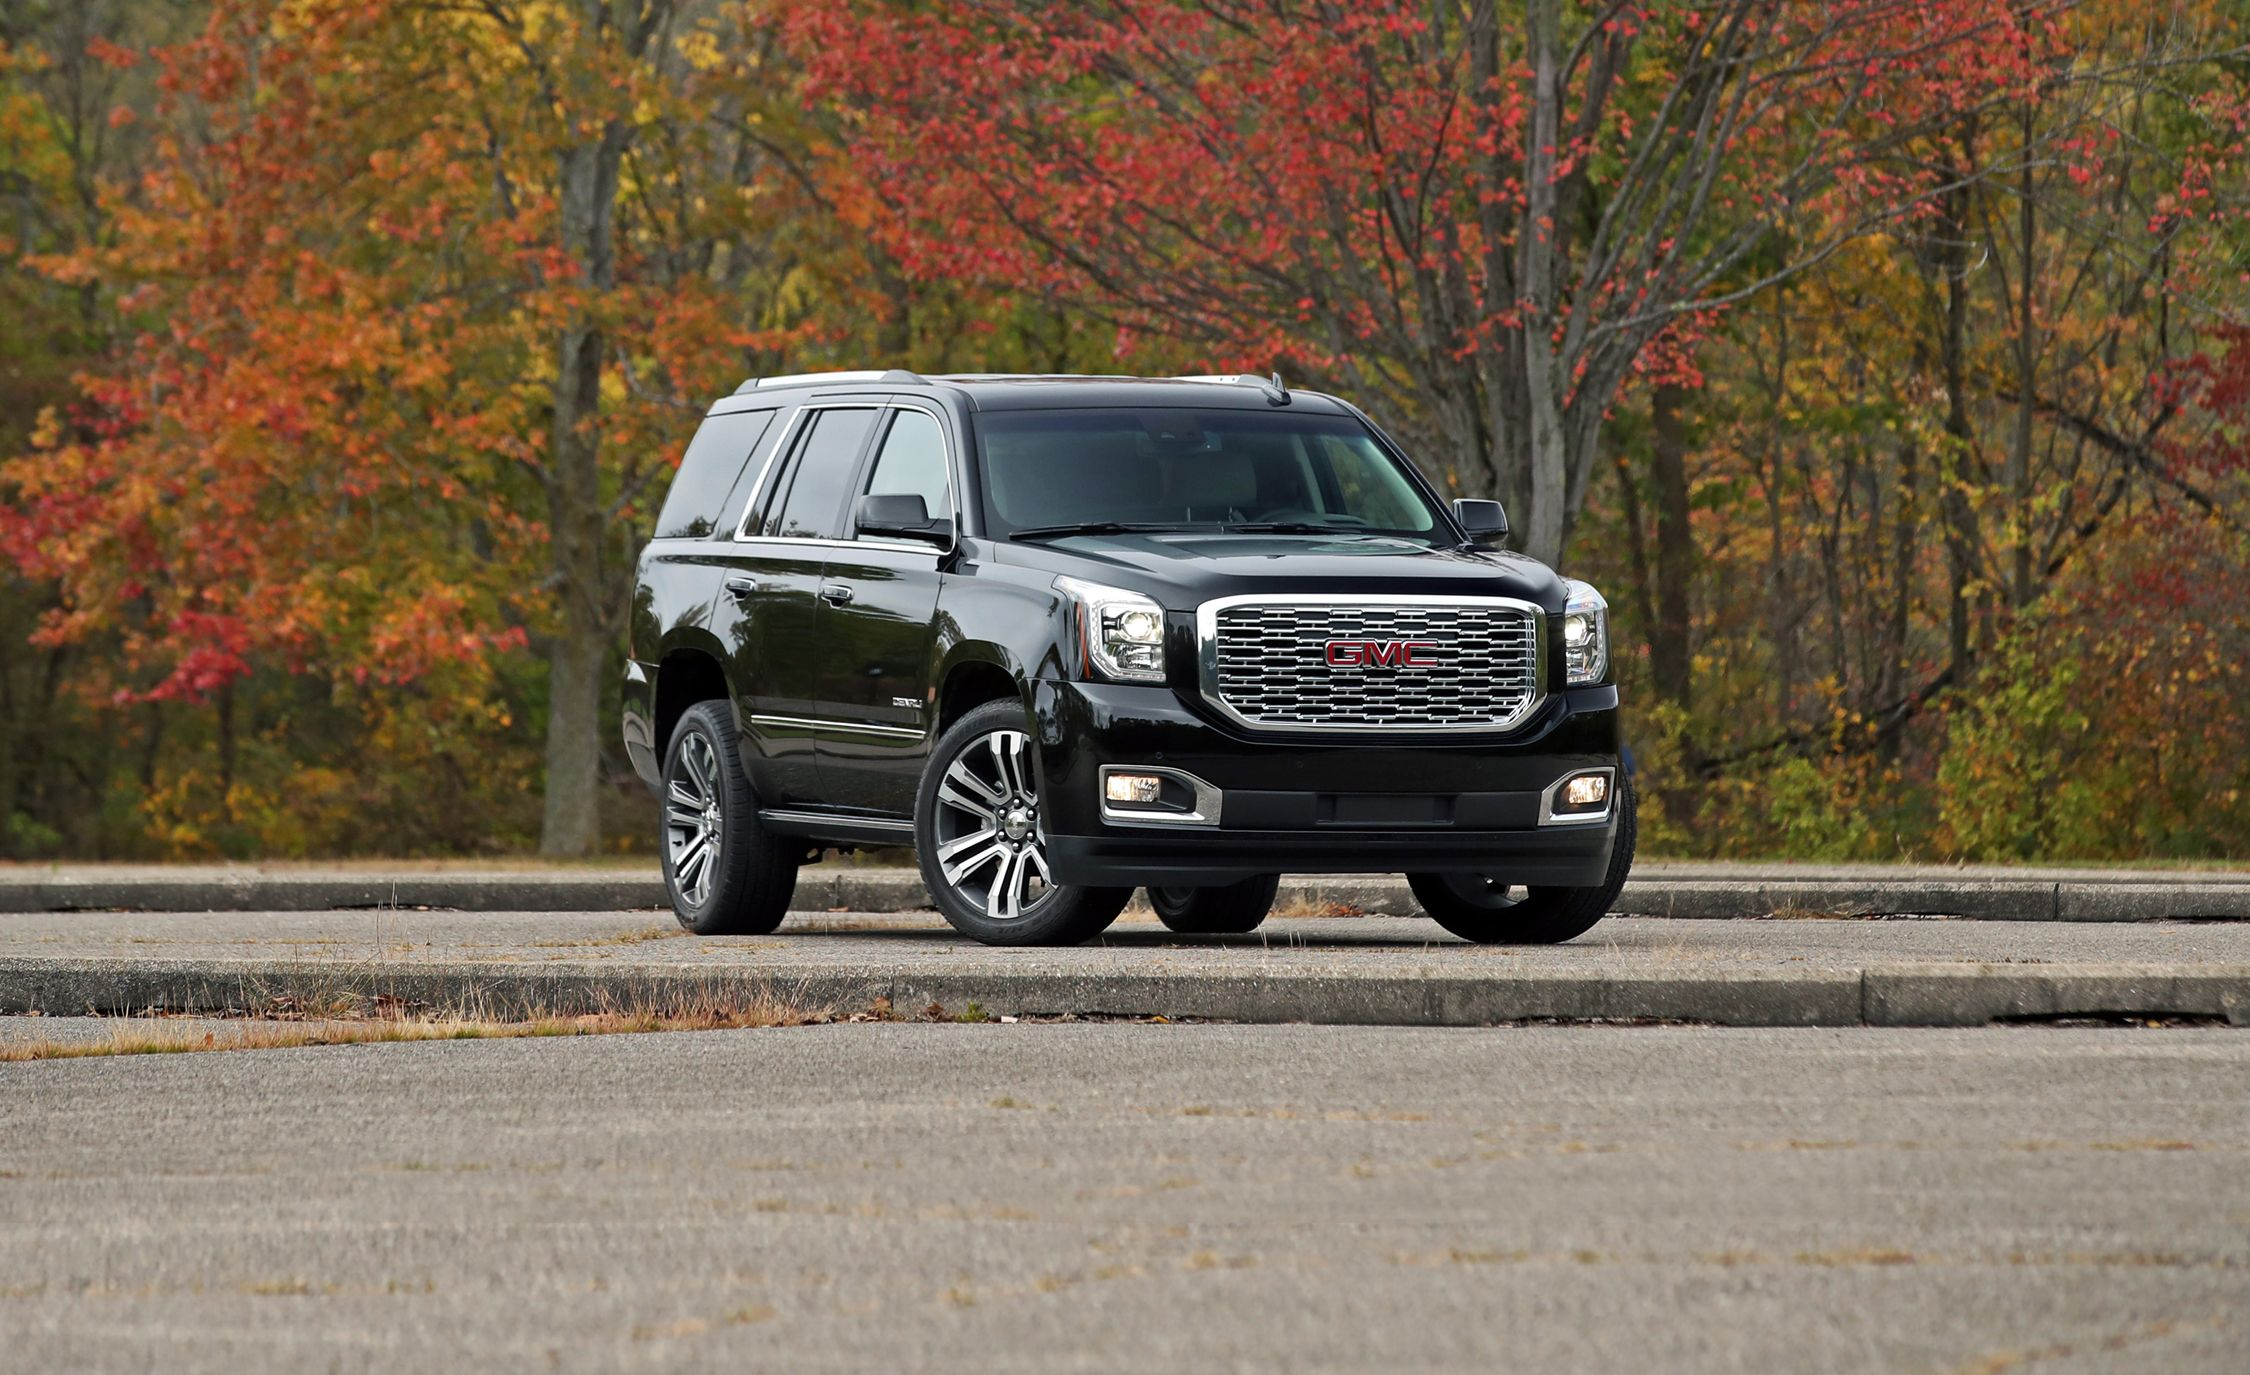 2018 GMC Yukon Denali 4WD 10-Speed Automatic